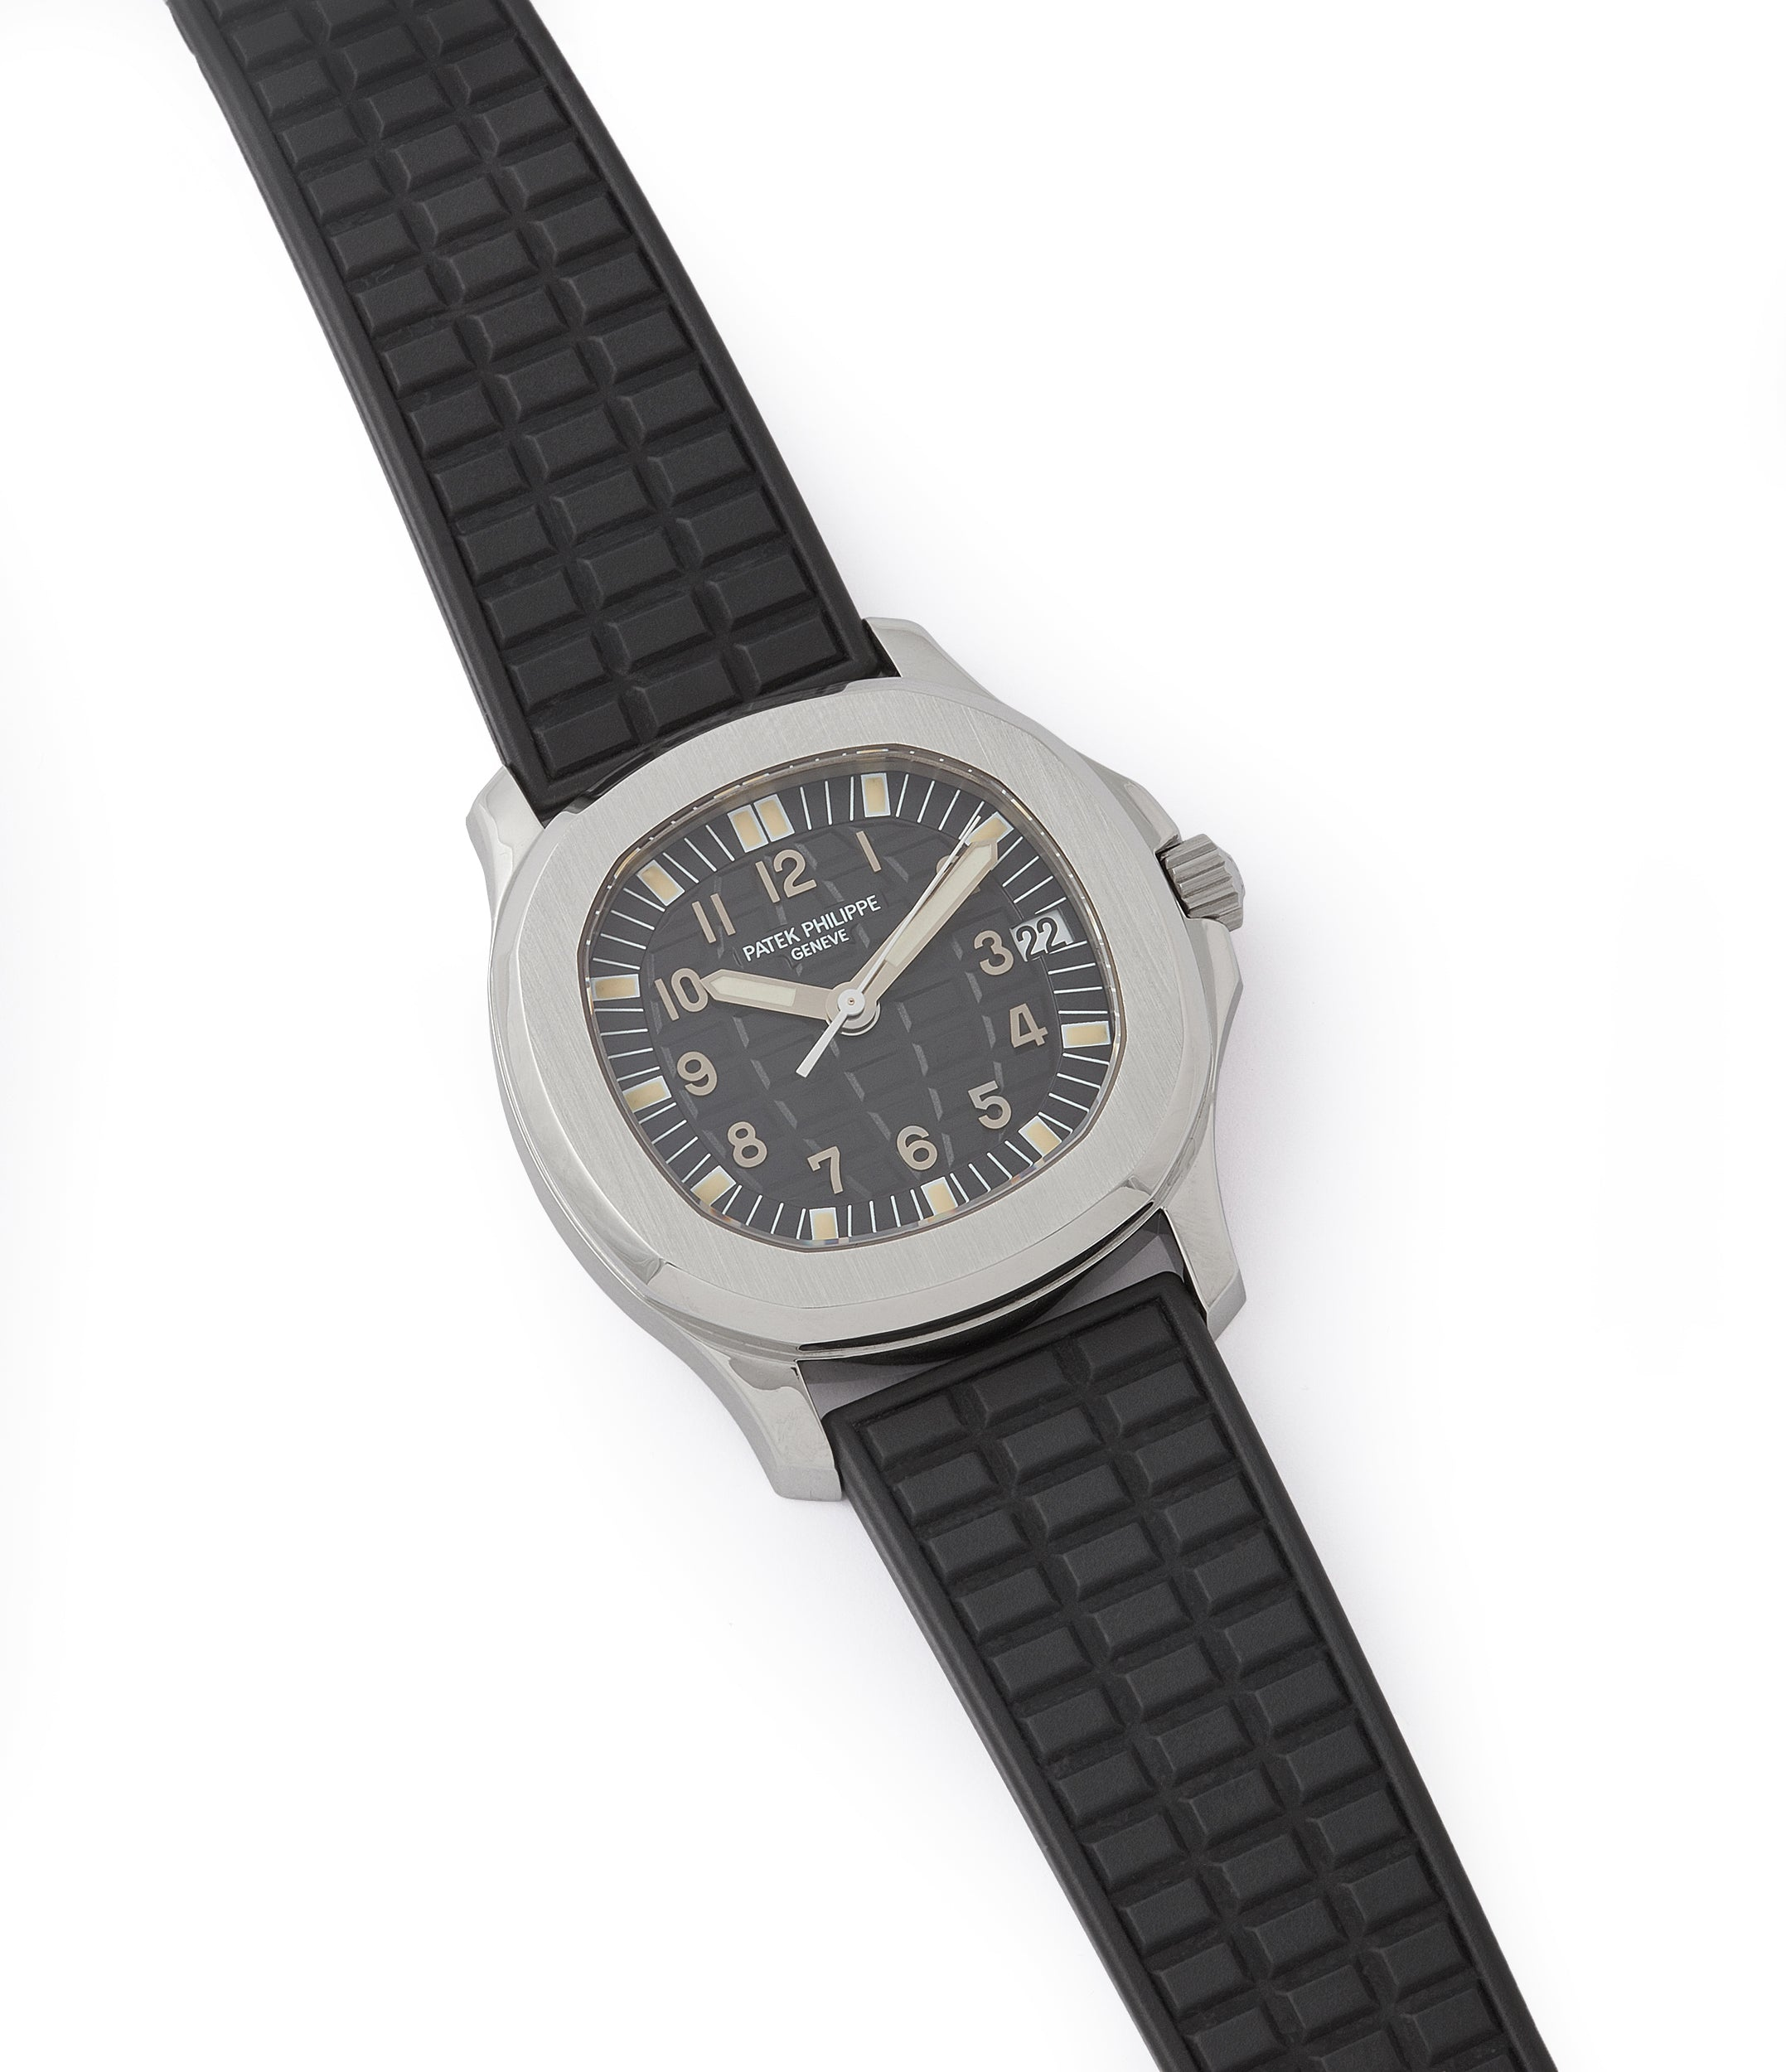 buy preowned Patek Philippe Aquanaut 5066A-001 steel sport watch rubber strap for sale online at A Colleted Man London UK specialist of rare watches